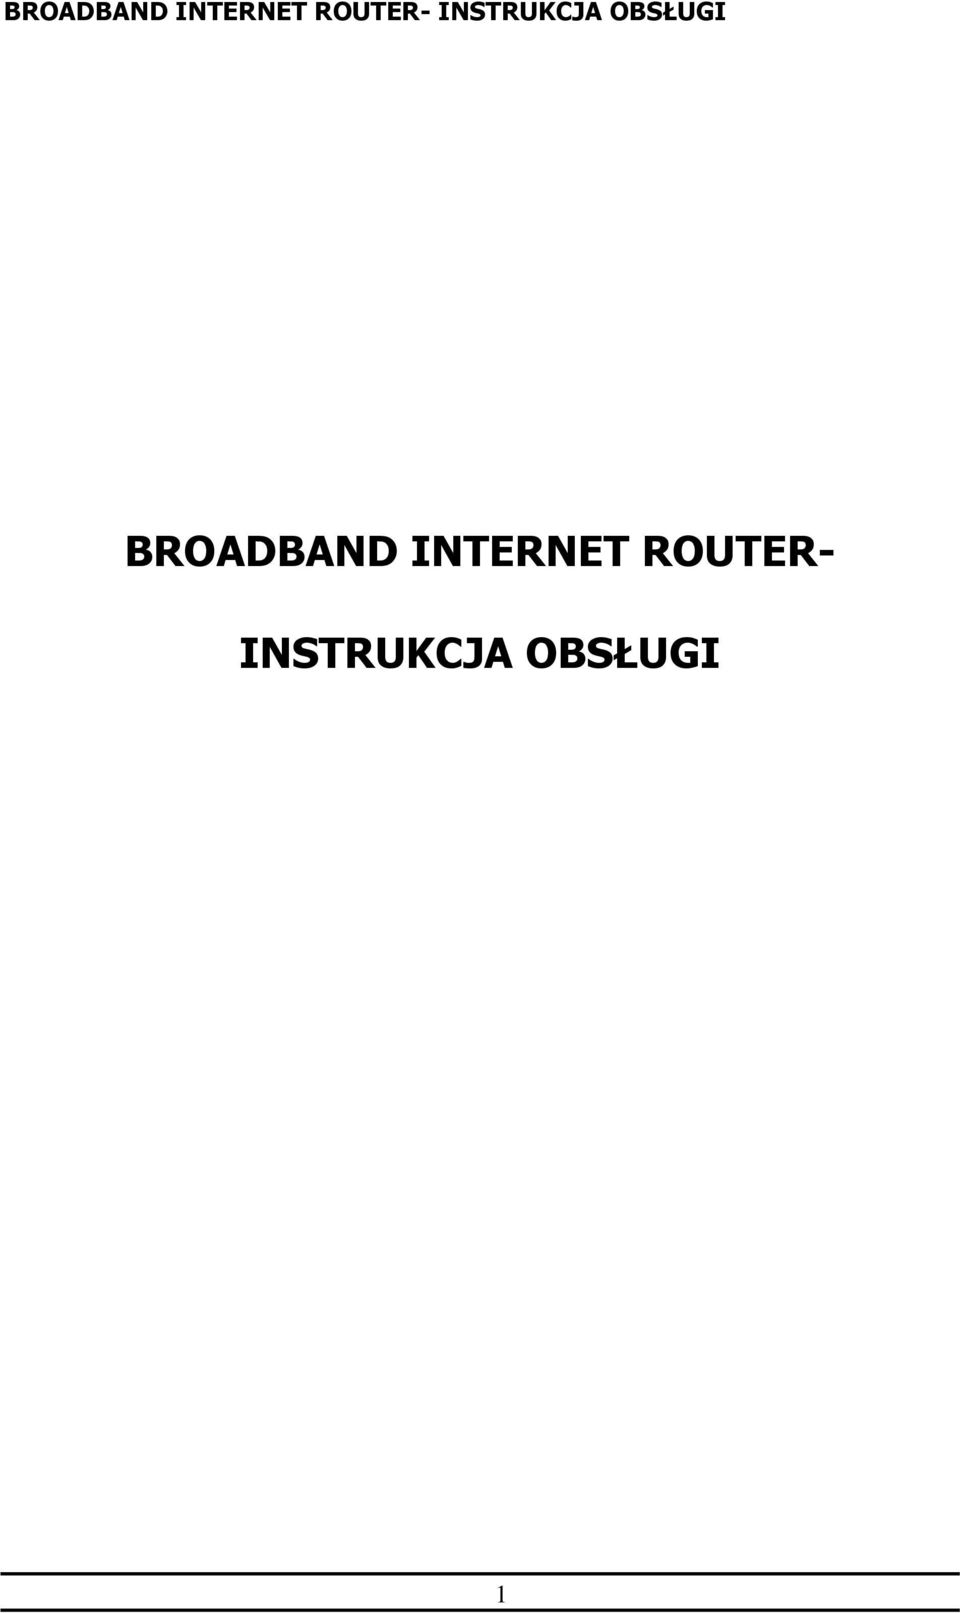 ROUTER-